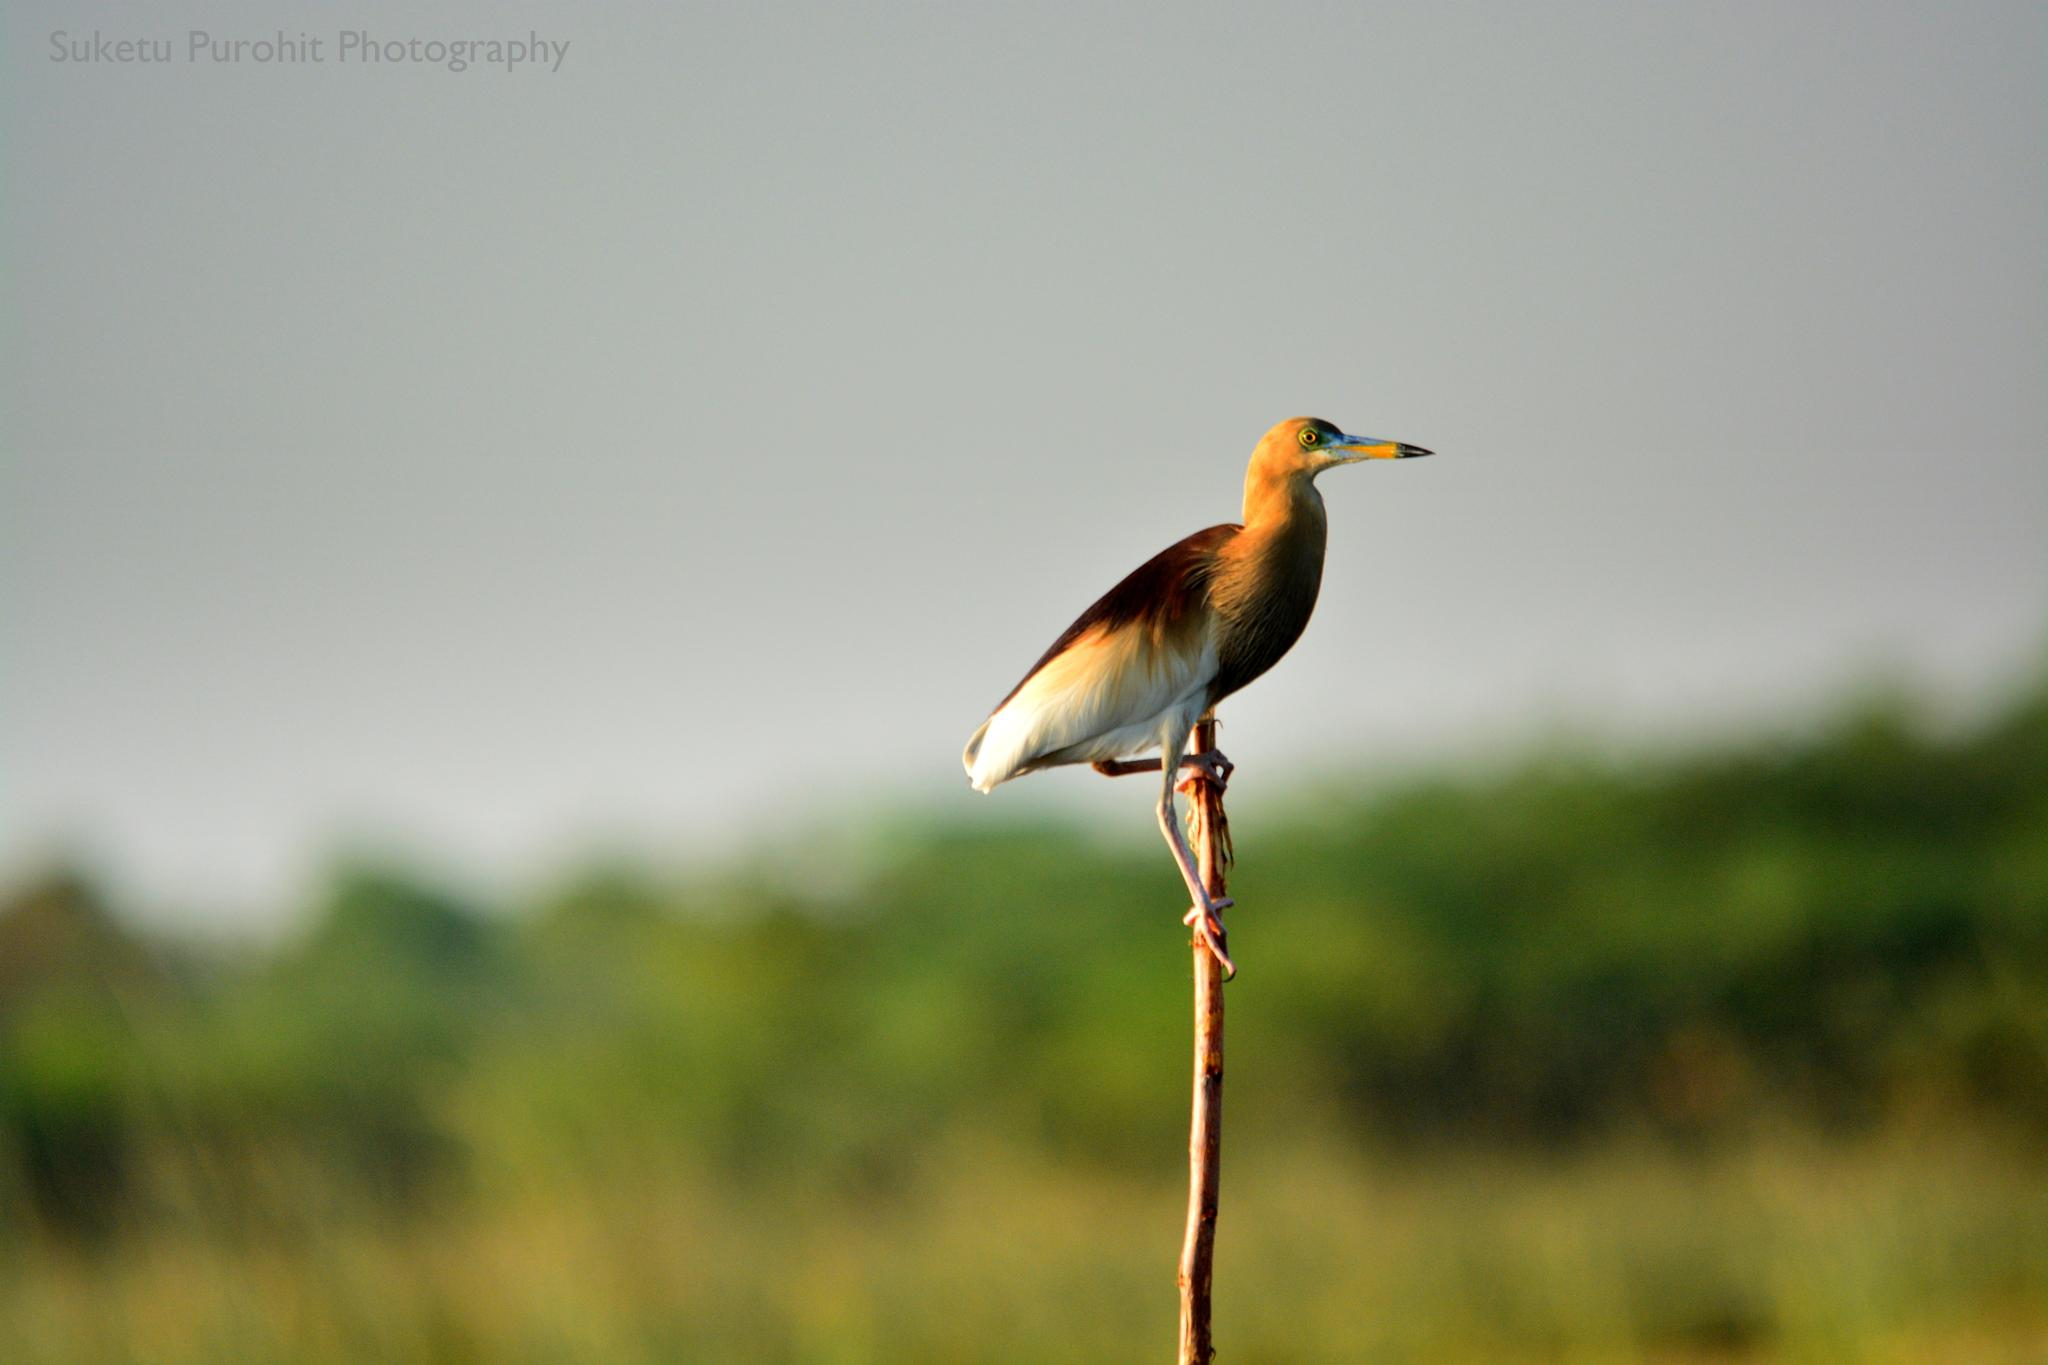 Bird on a branch by Suketu Purohit